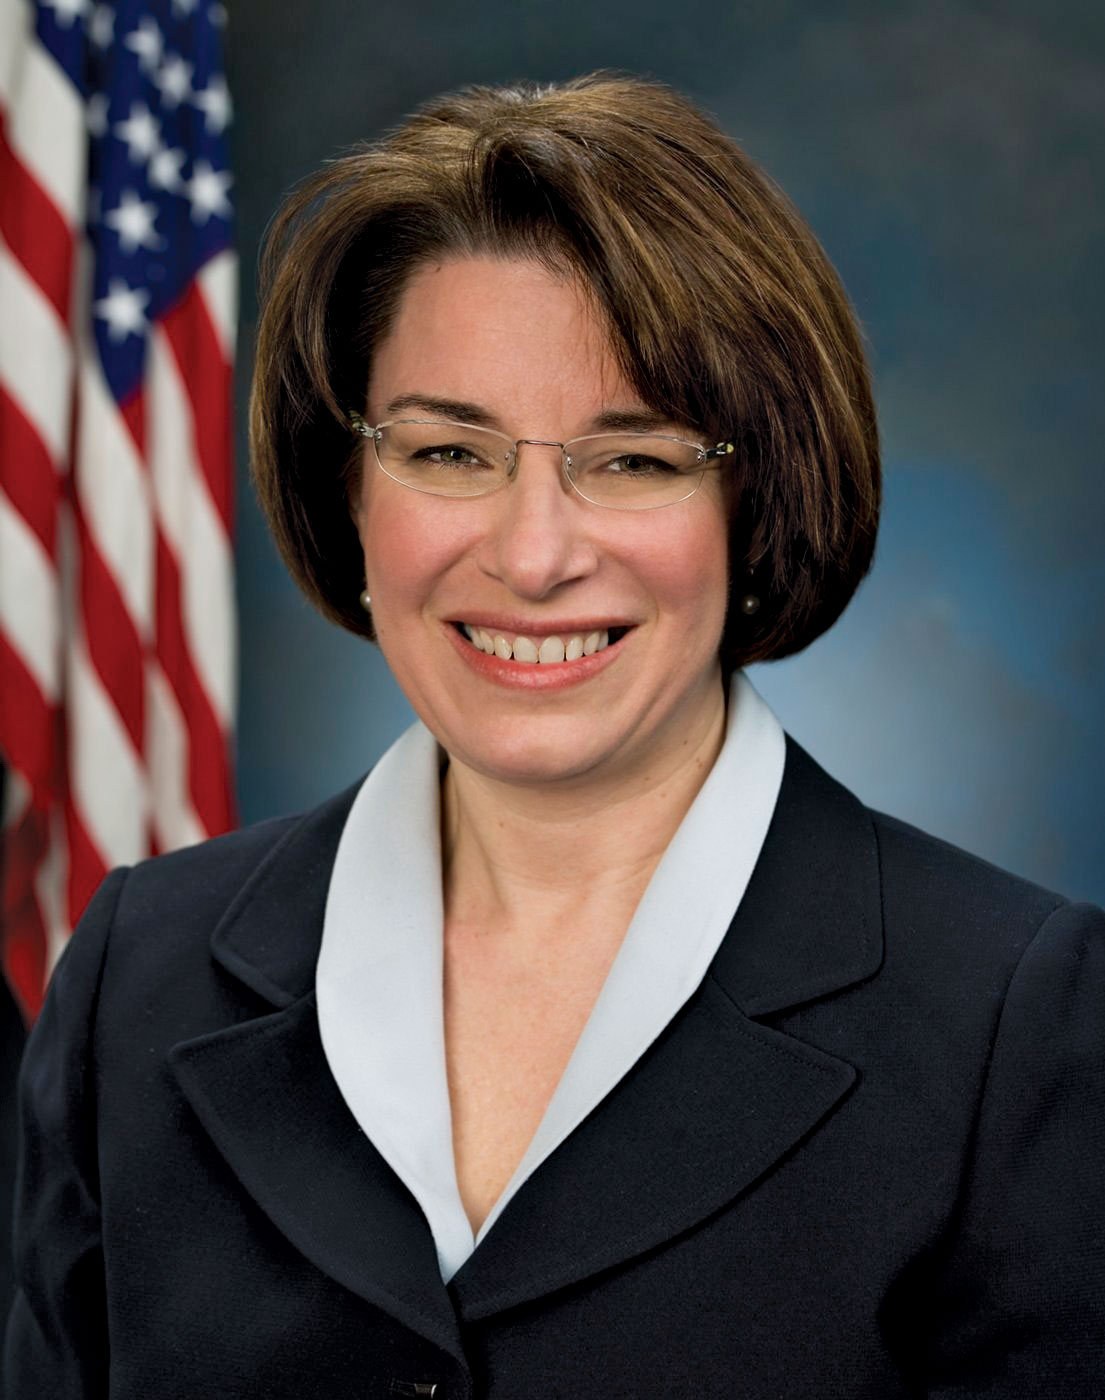 Amy Klobuchar is first woman elected U.S. Senator from Minnesota placeholder image.